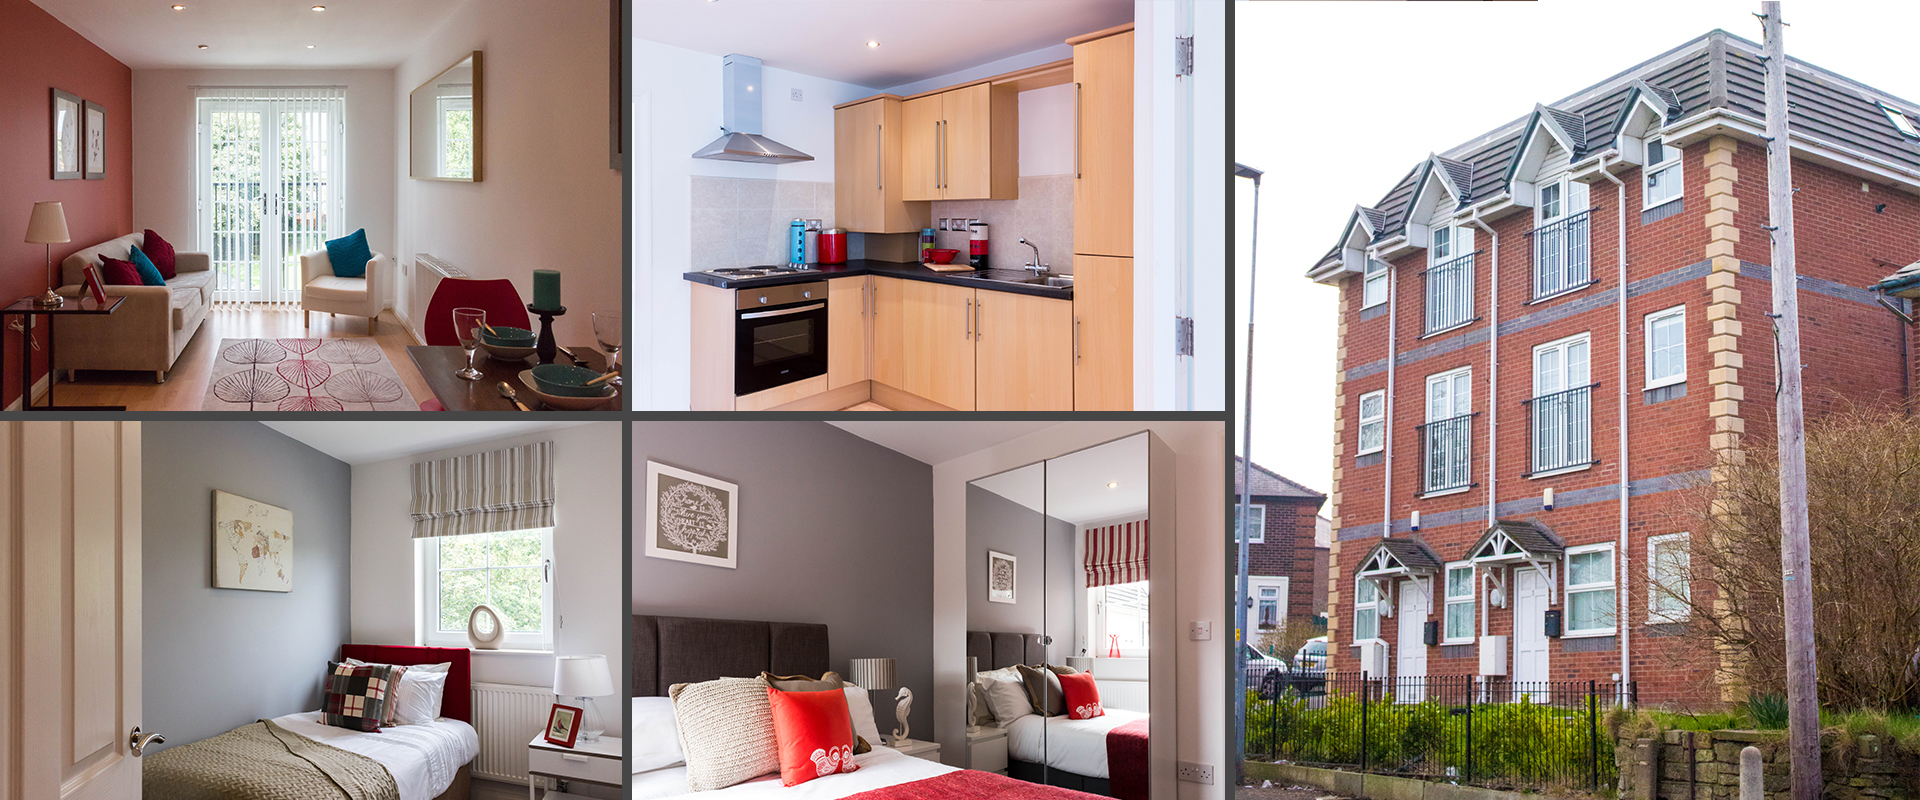 Manchester - Guide Price from: £109,950 - 7% Anticipated annual yields